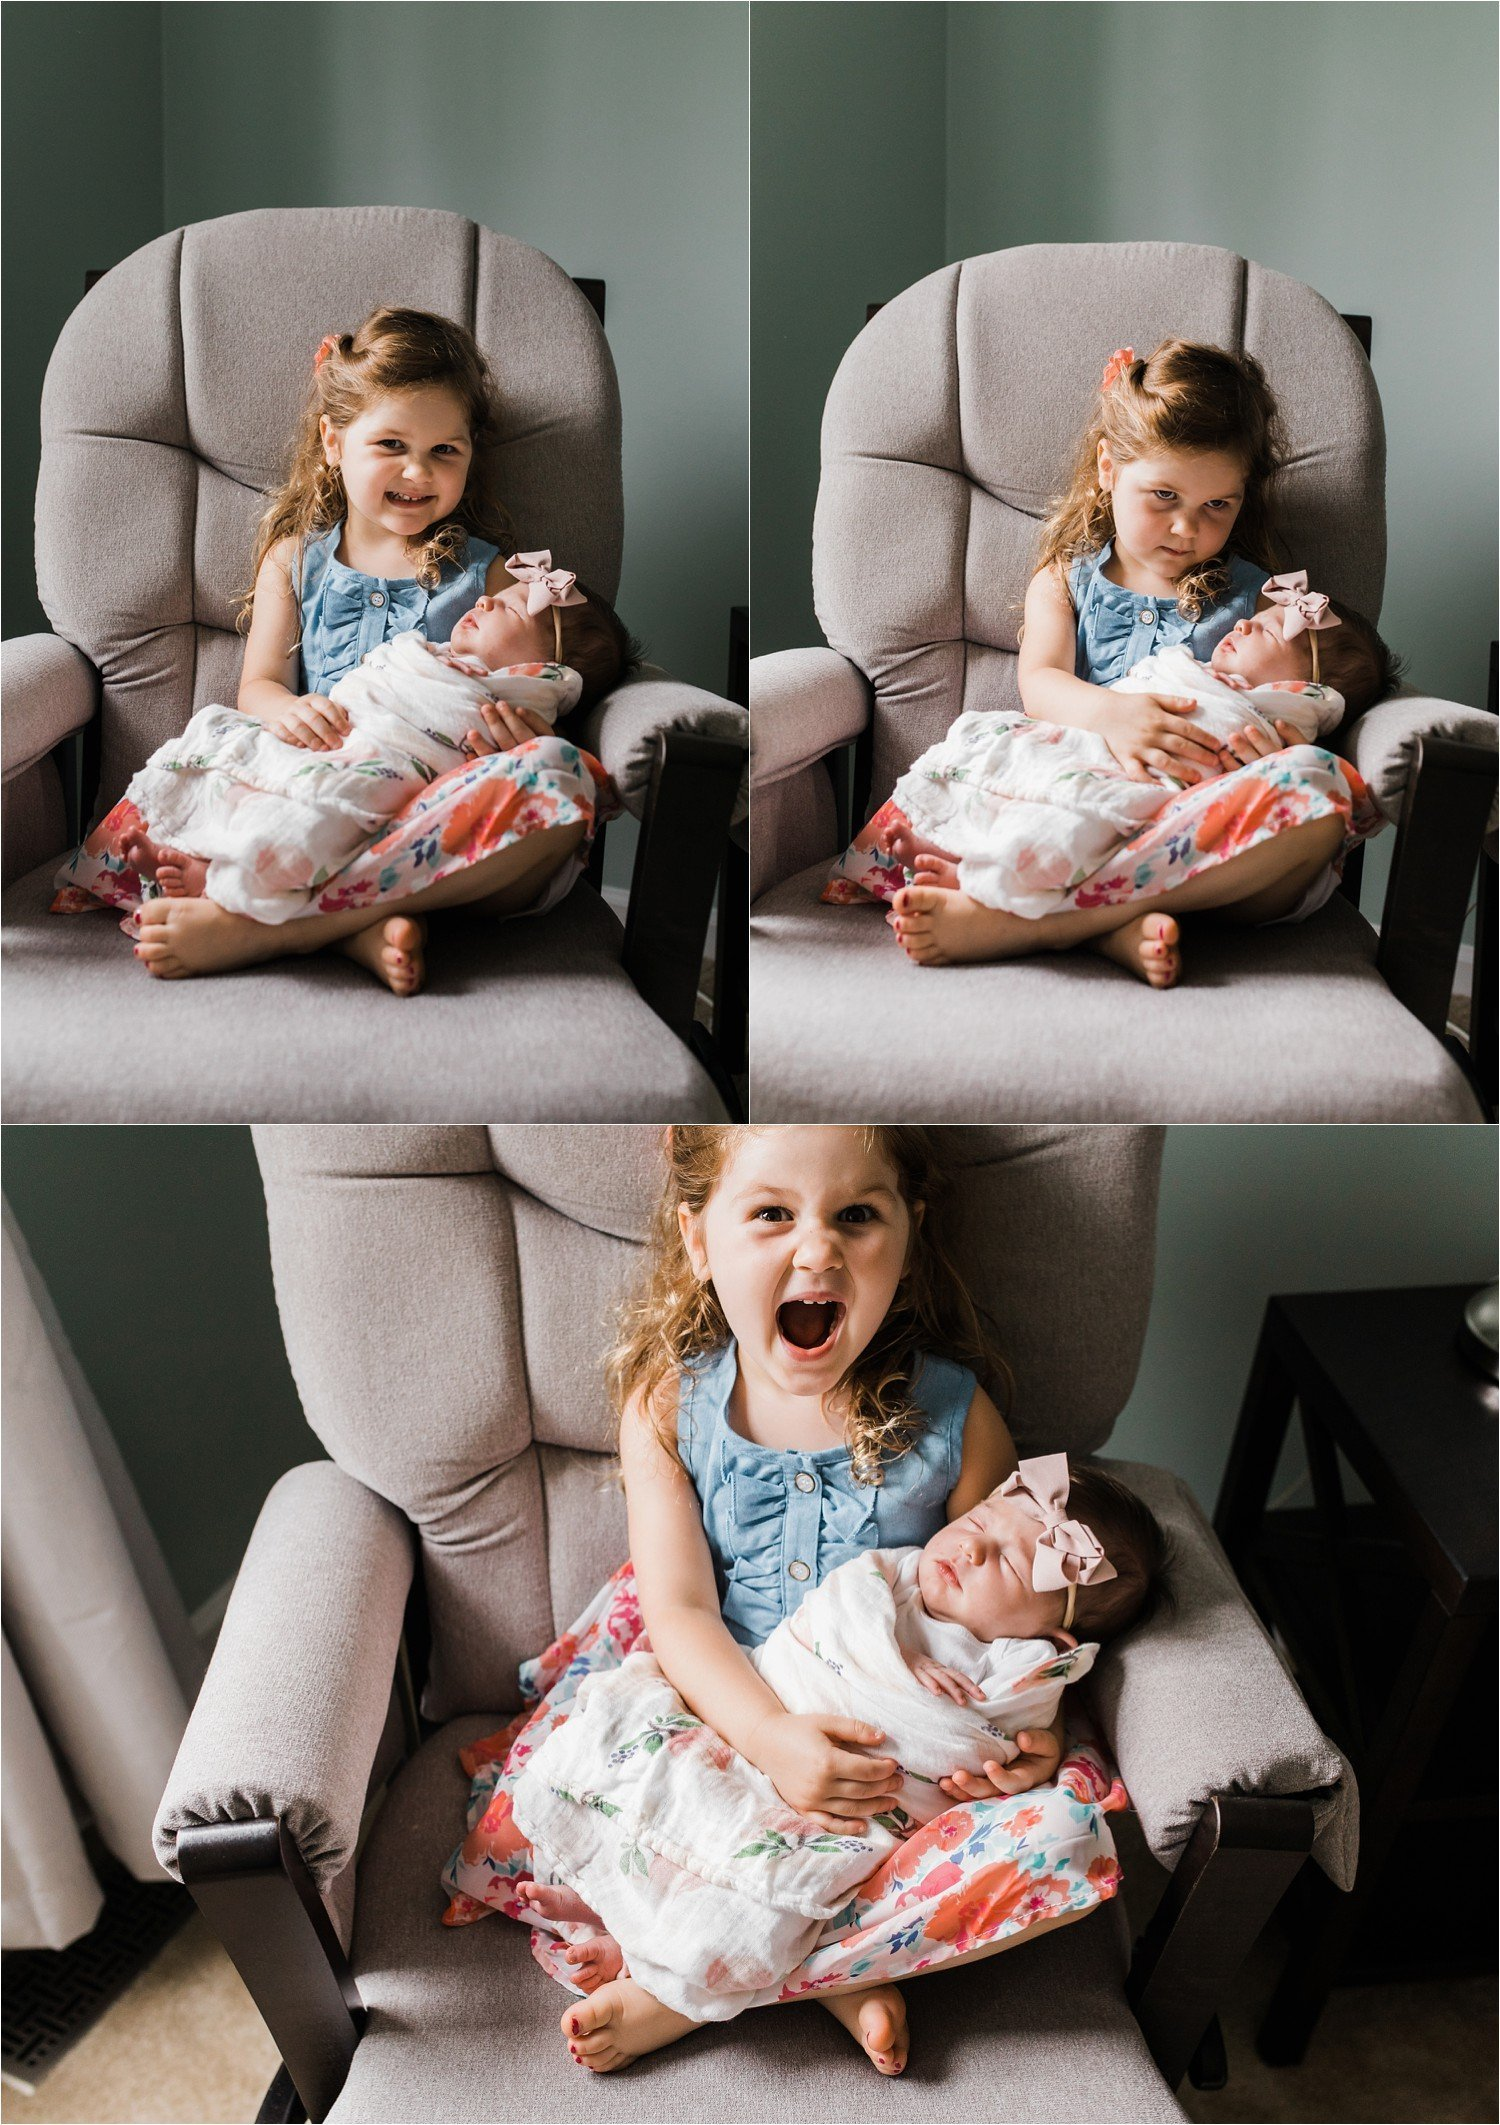 photos of a big sister excited to hold her new baby sister